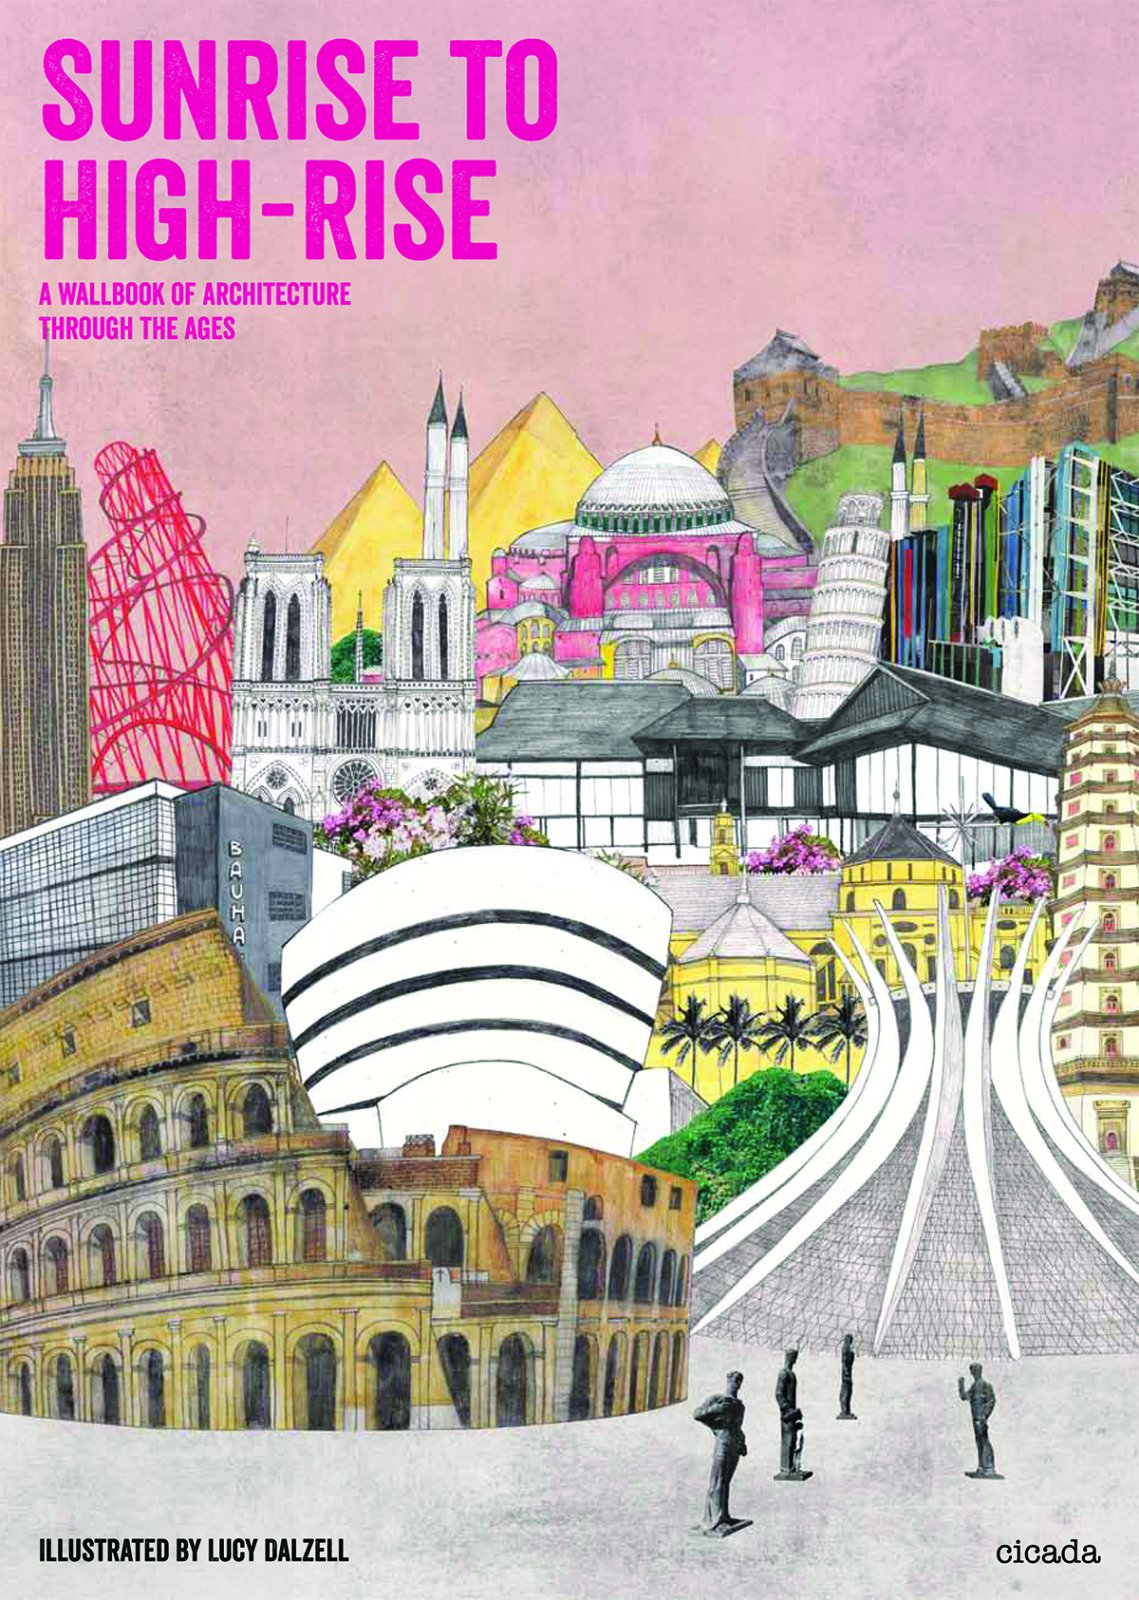 Sunrise to High-Rise: A Wallbook of Architecture through the Ages